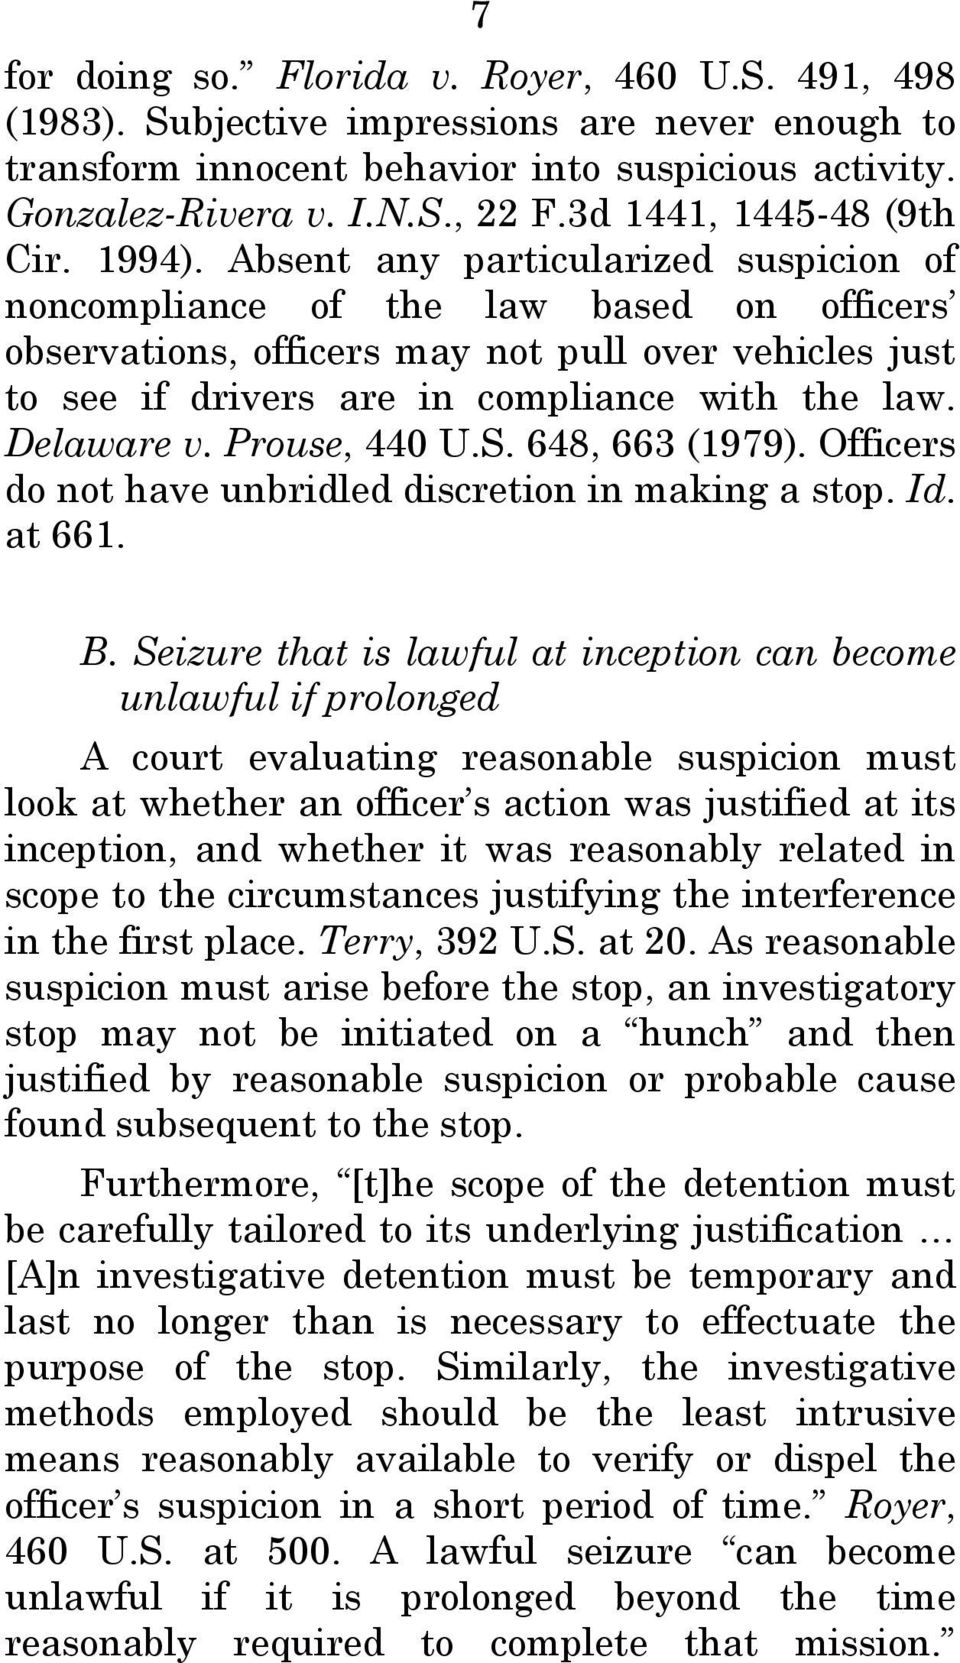 Absent any particularized suspicion of noncompliance of the law based on officers observations, officers may not pull over vehicles just to see if drivers are in compliance with the law. Delaware v.